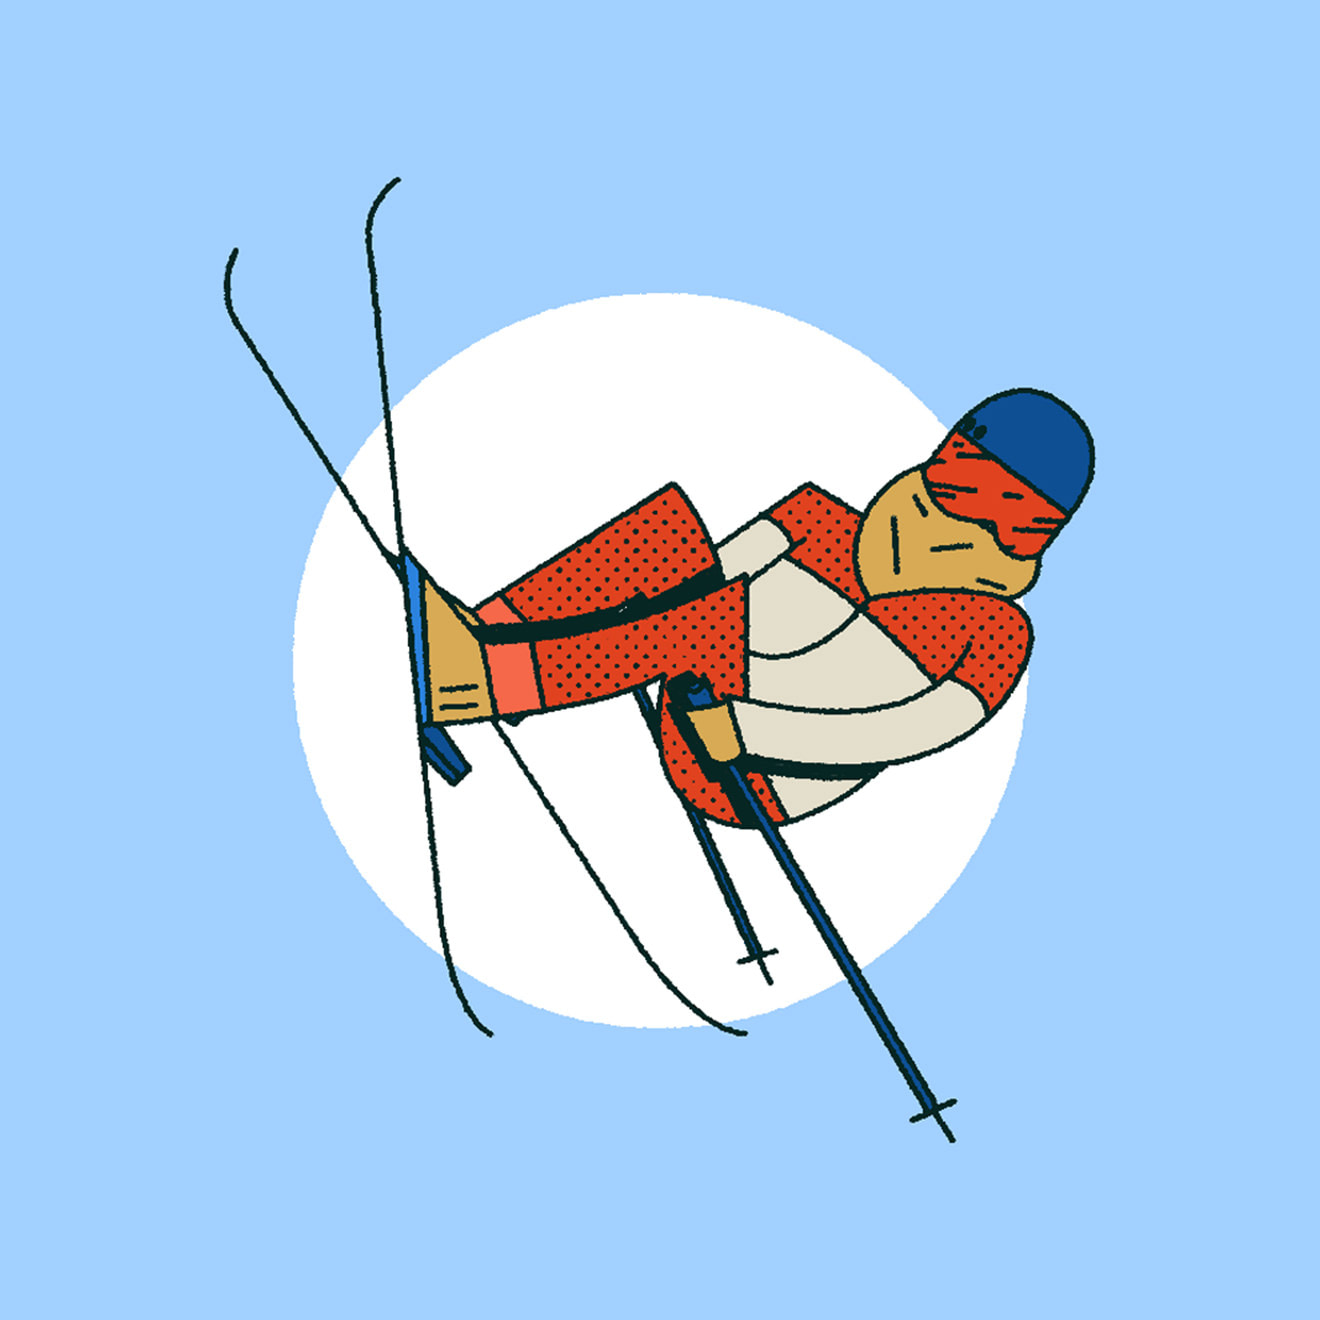 Blue, Red, White & Beige illustration of a person freestyle ski jumping